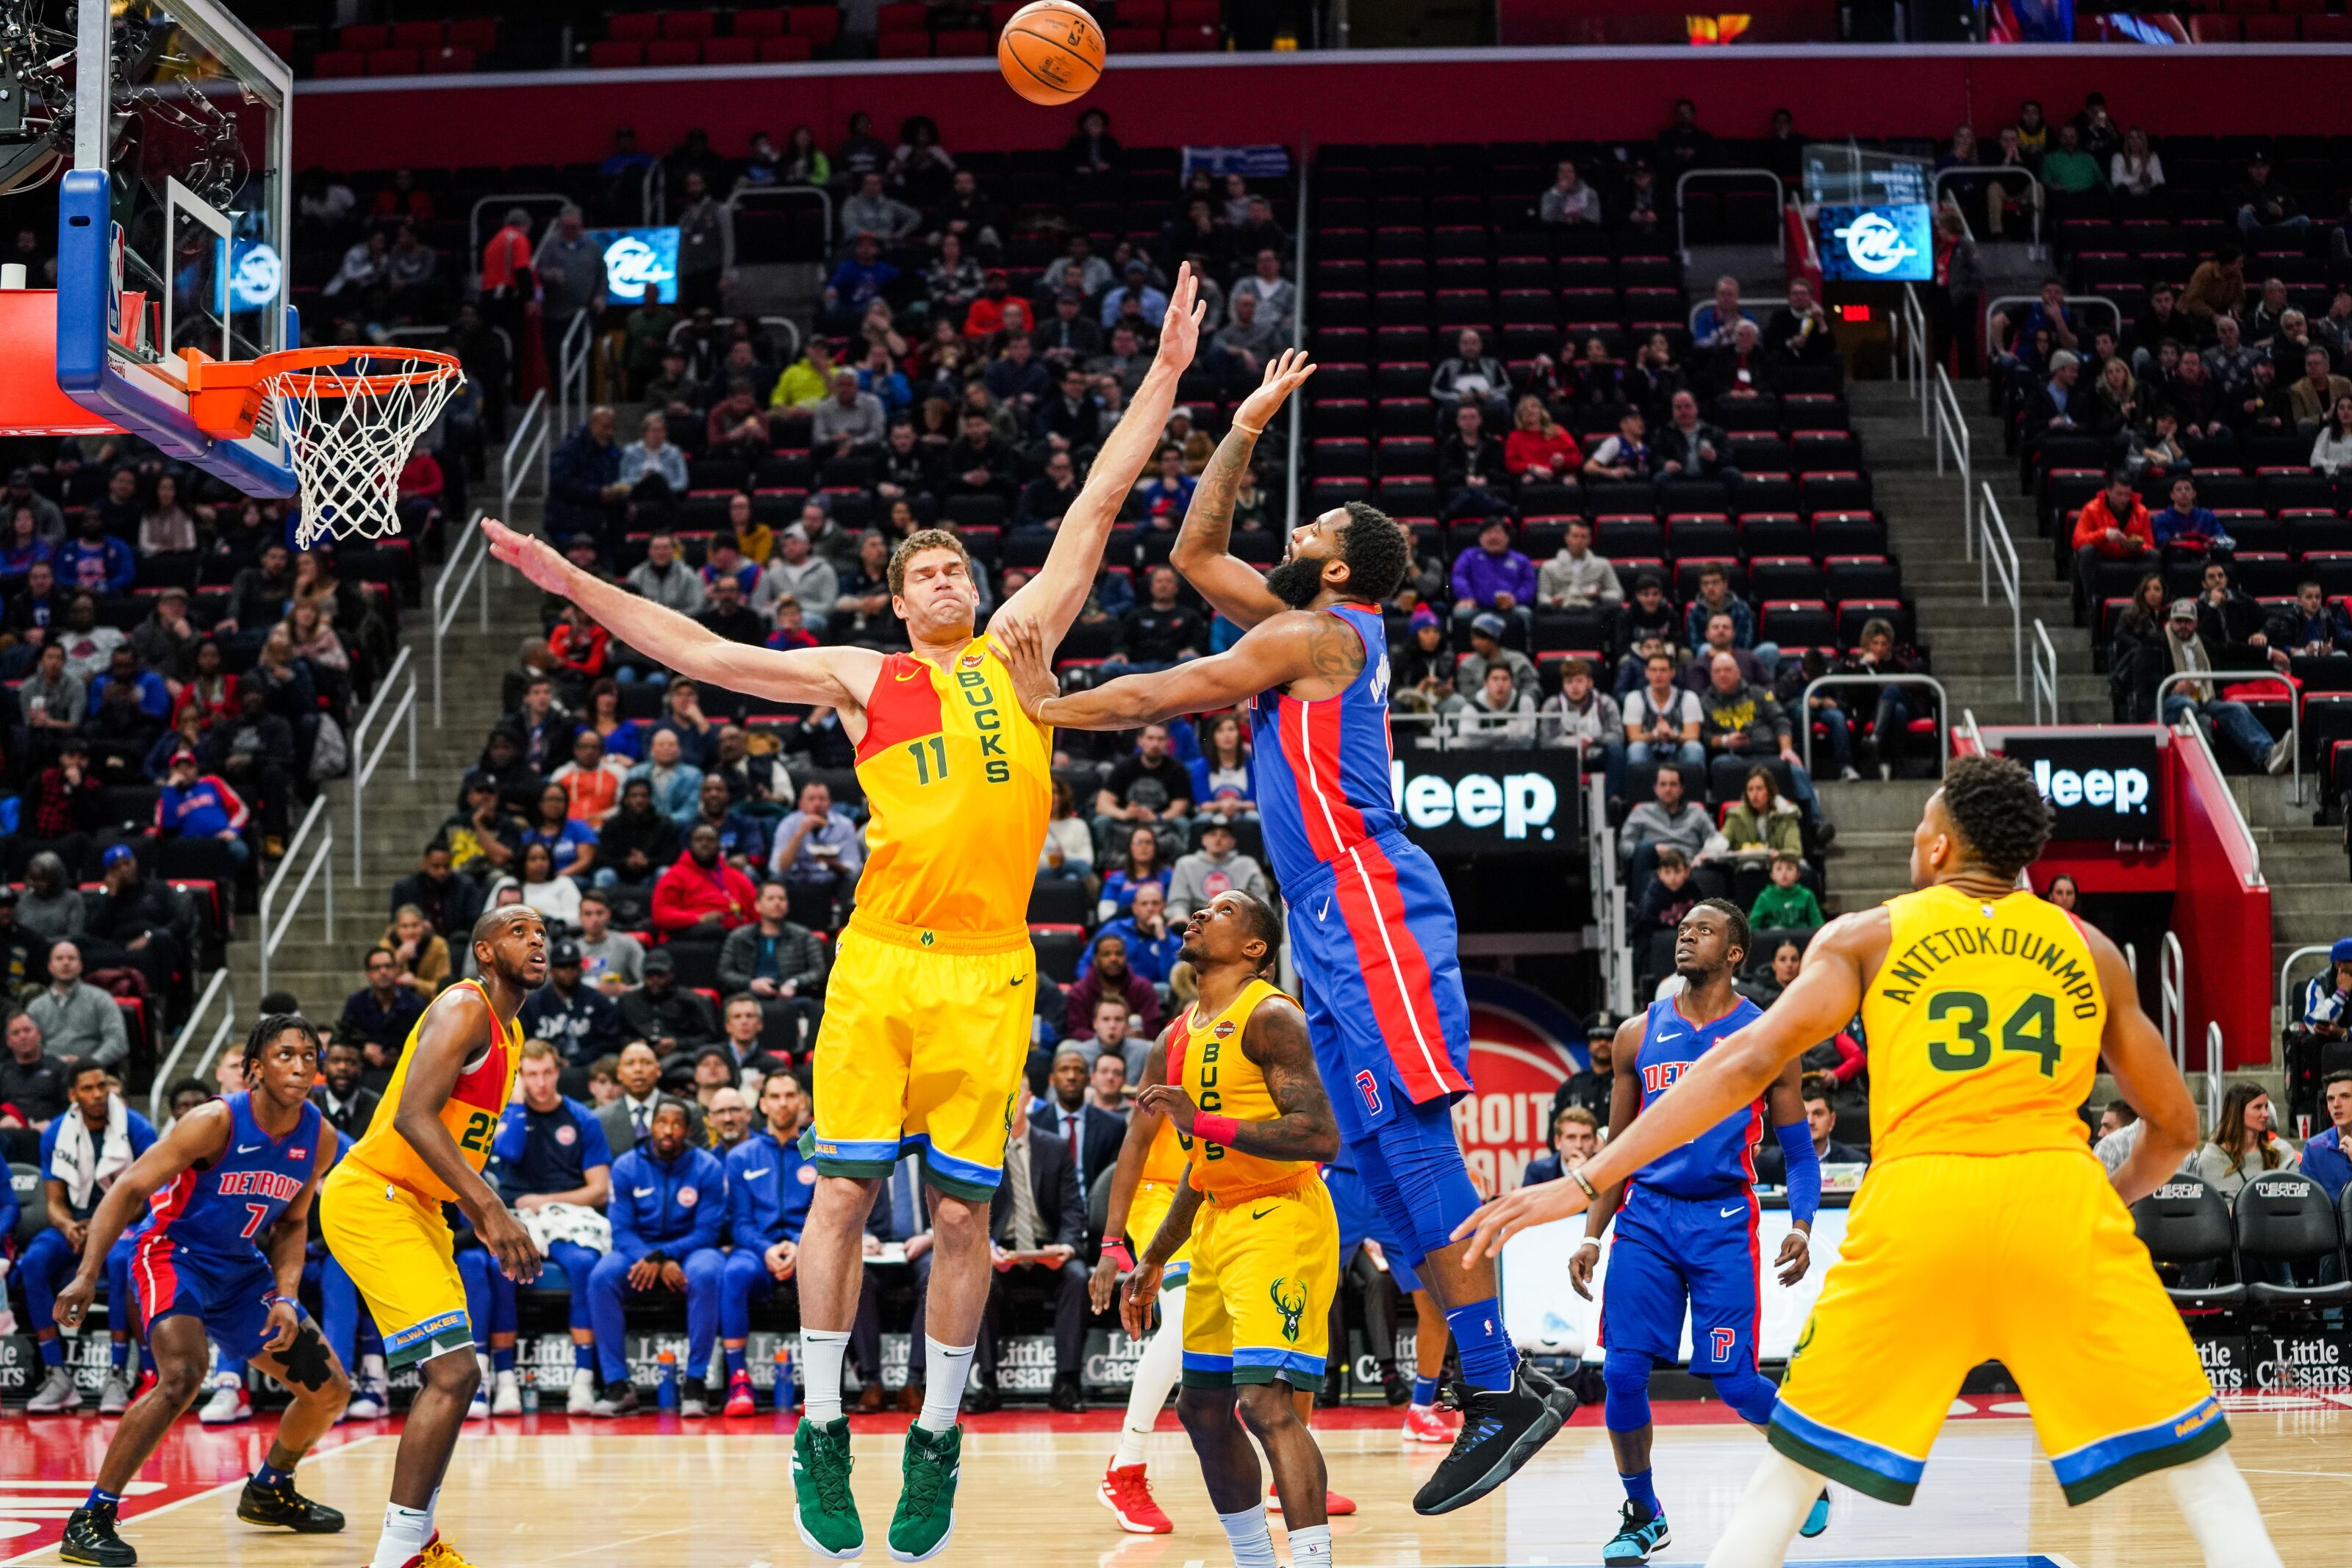 DETROIT, MICHIGAN - JANUARY 29: Andre Drummond #0 of the Detroit Pistons shoots the ball over Brook Lopez #11 of the Milwaukee Bucks during a game at Little Caesars Arena on January 29, 2019 in Detroit, Michigan. (Photo by Cassy Athena/Getty Images)